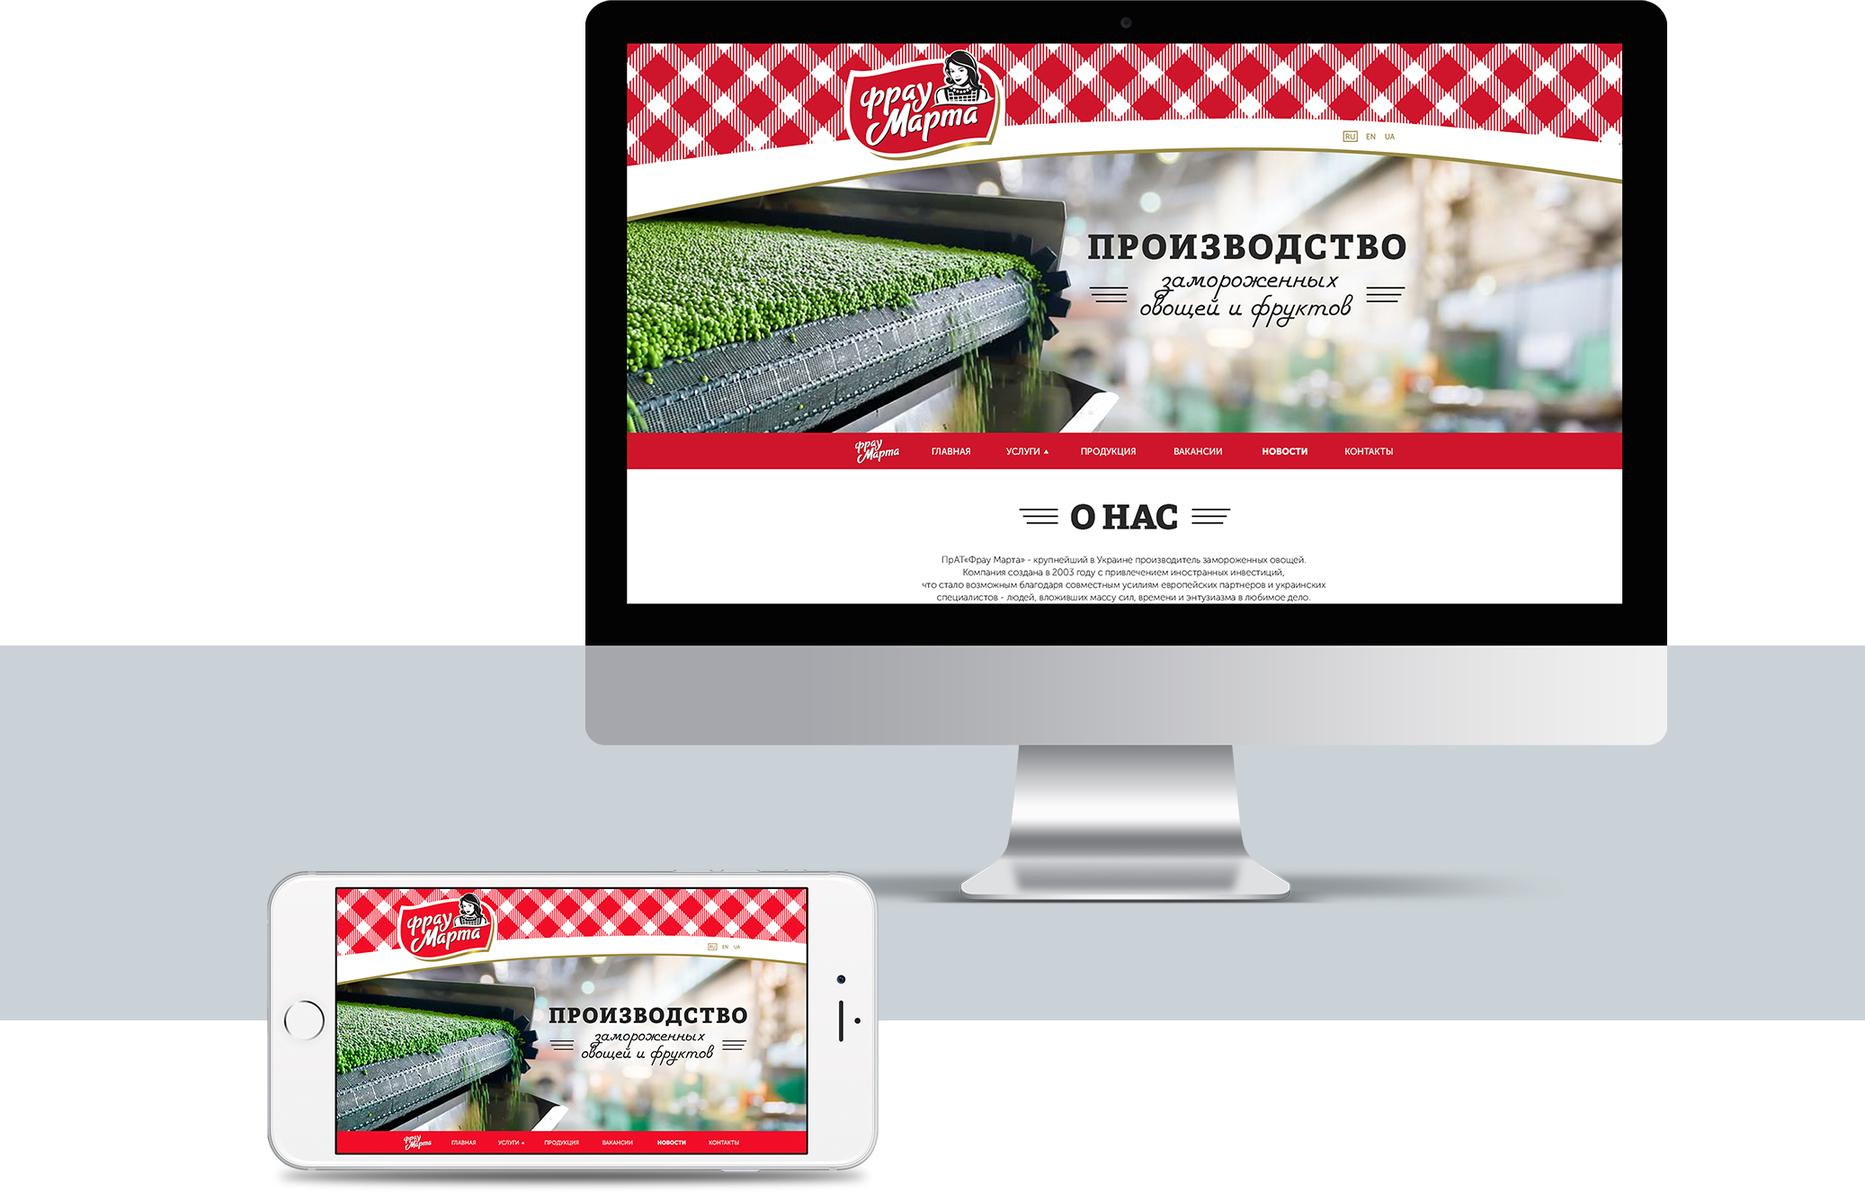 Case: development of a website for Frau Marta — Rubarb - Image - 1